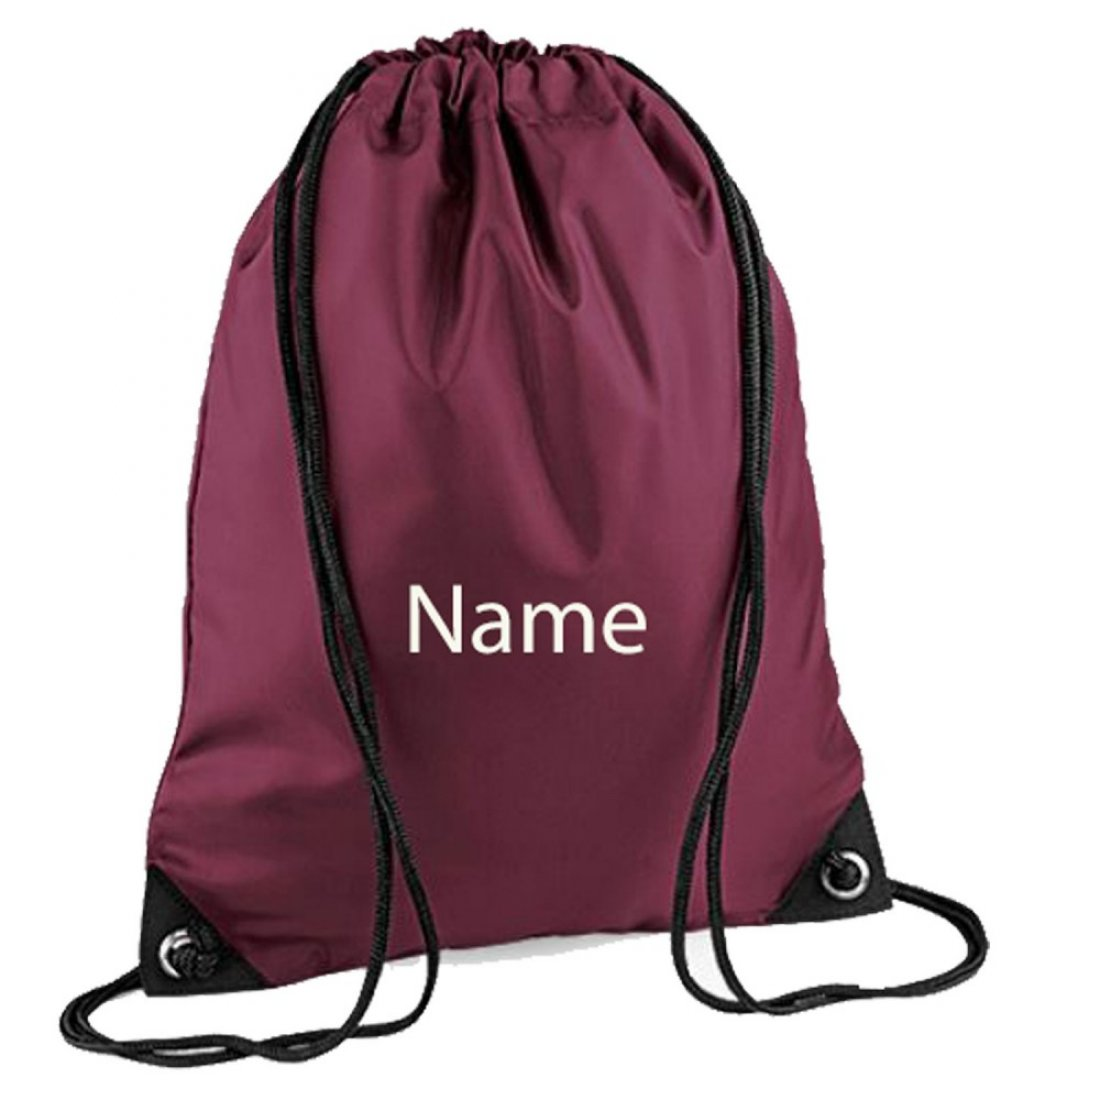 Personalised embroidered Any Name Drawstring Gym Bags